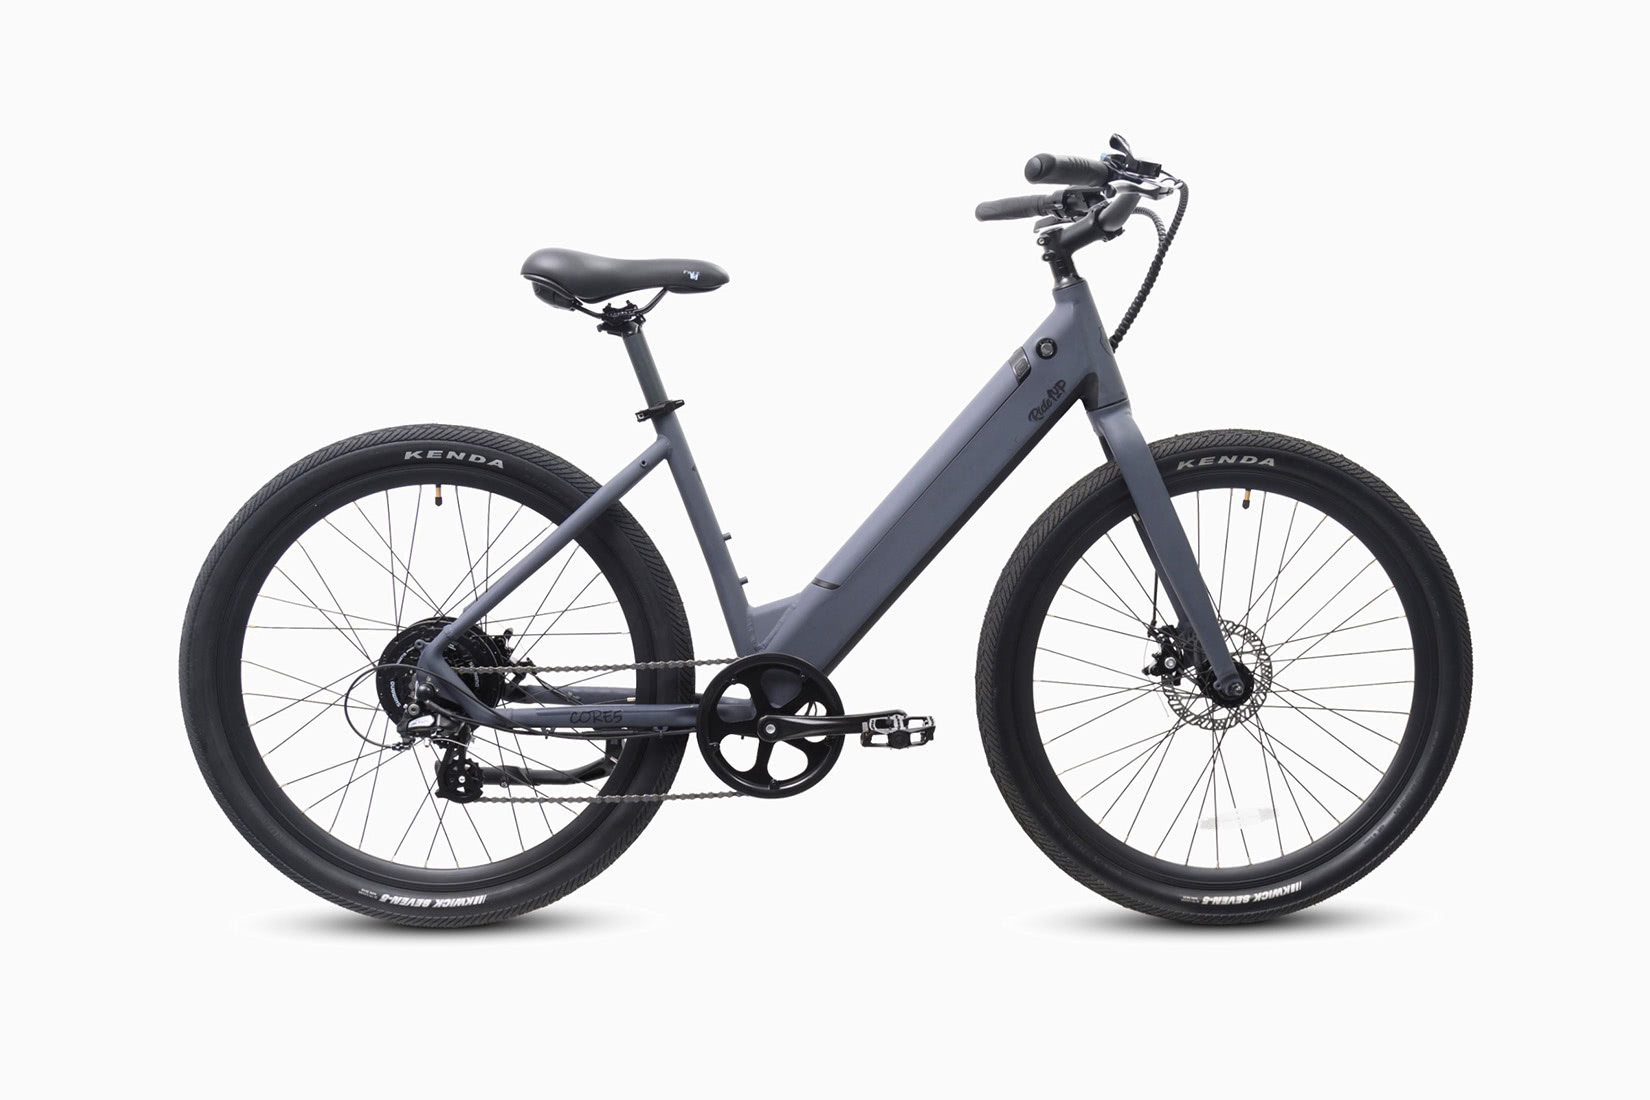 ride1up core-5 review entry level electric bike luxe digital